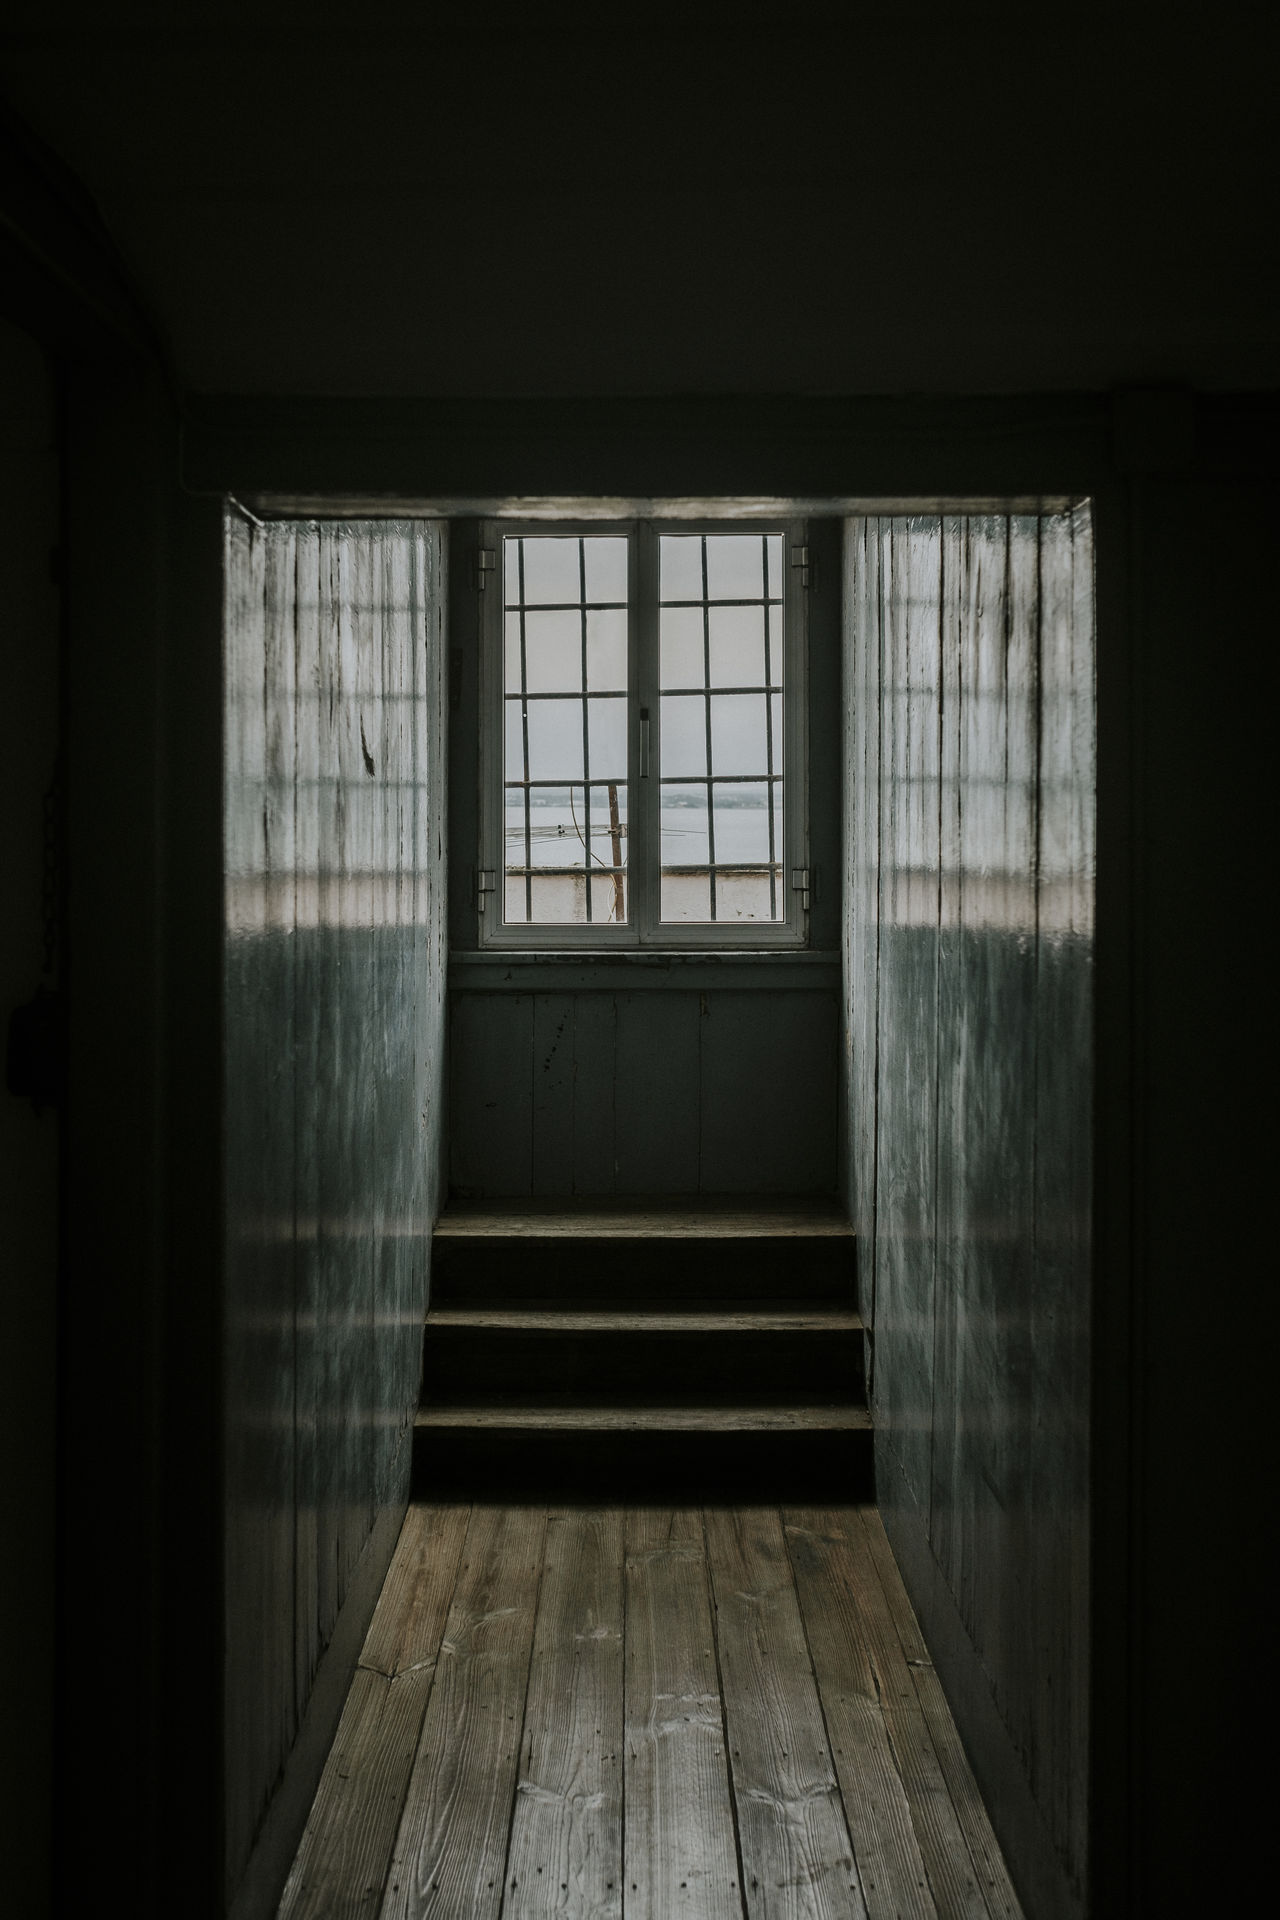 window, indoors, architecture, day, no people